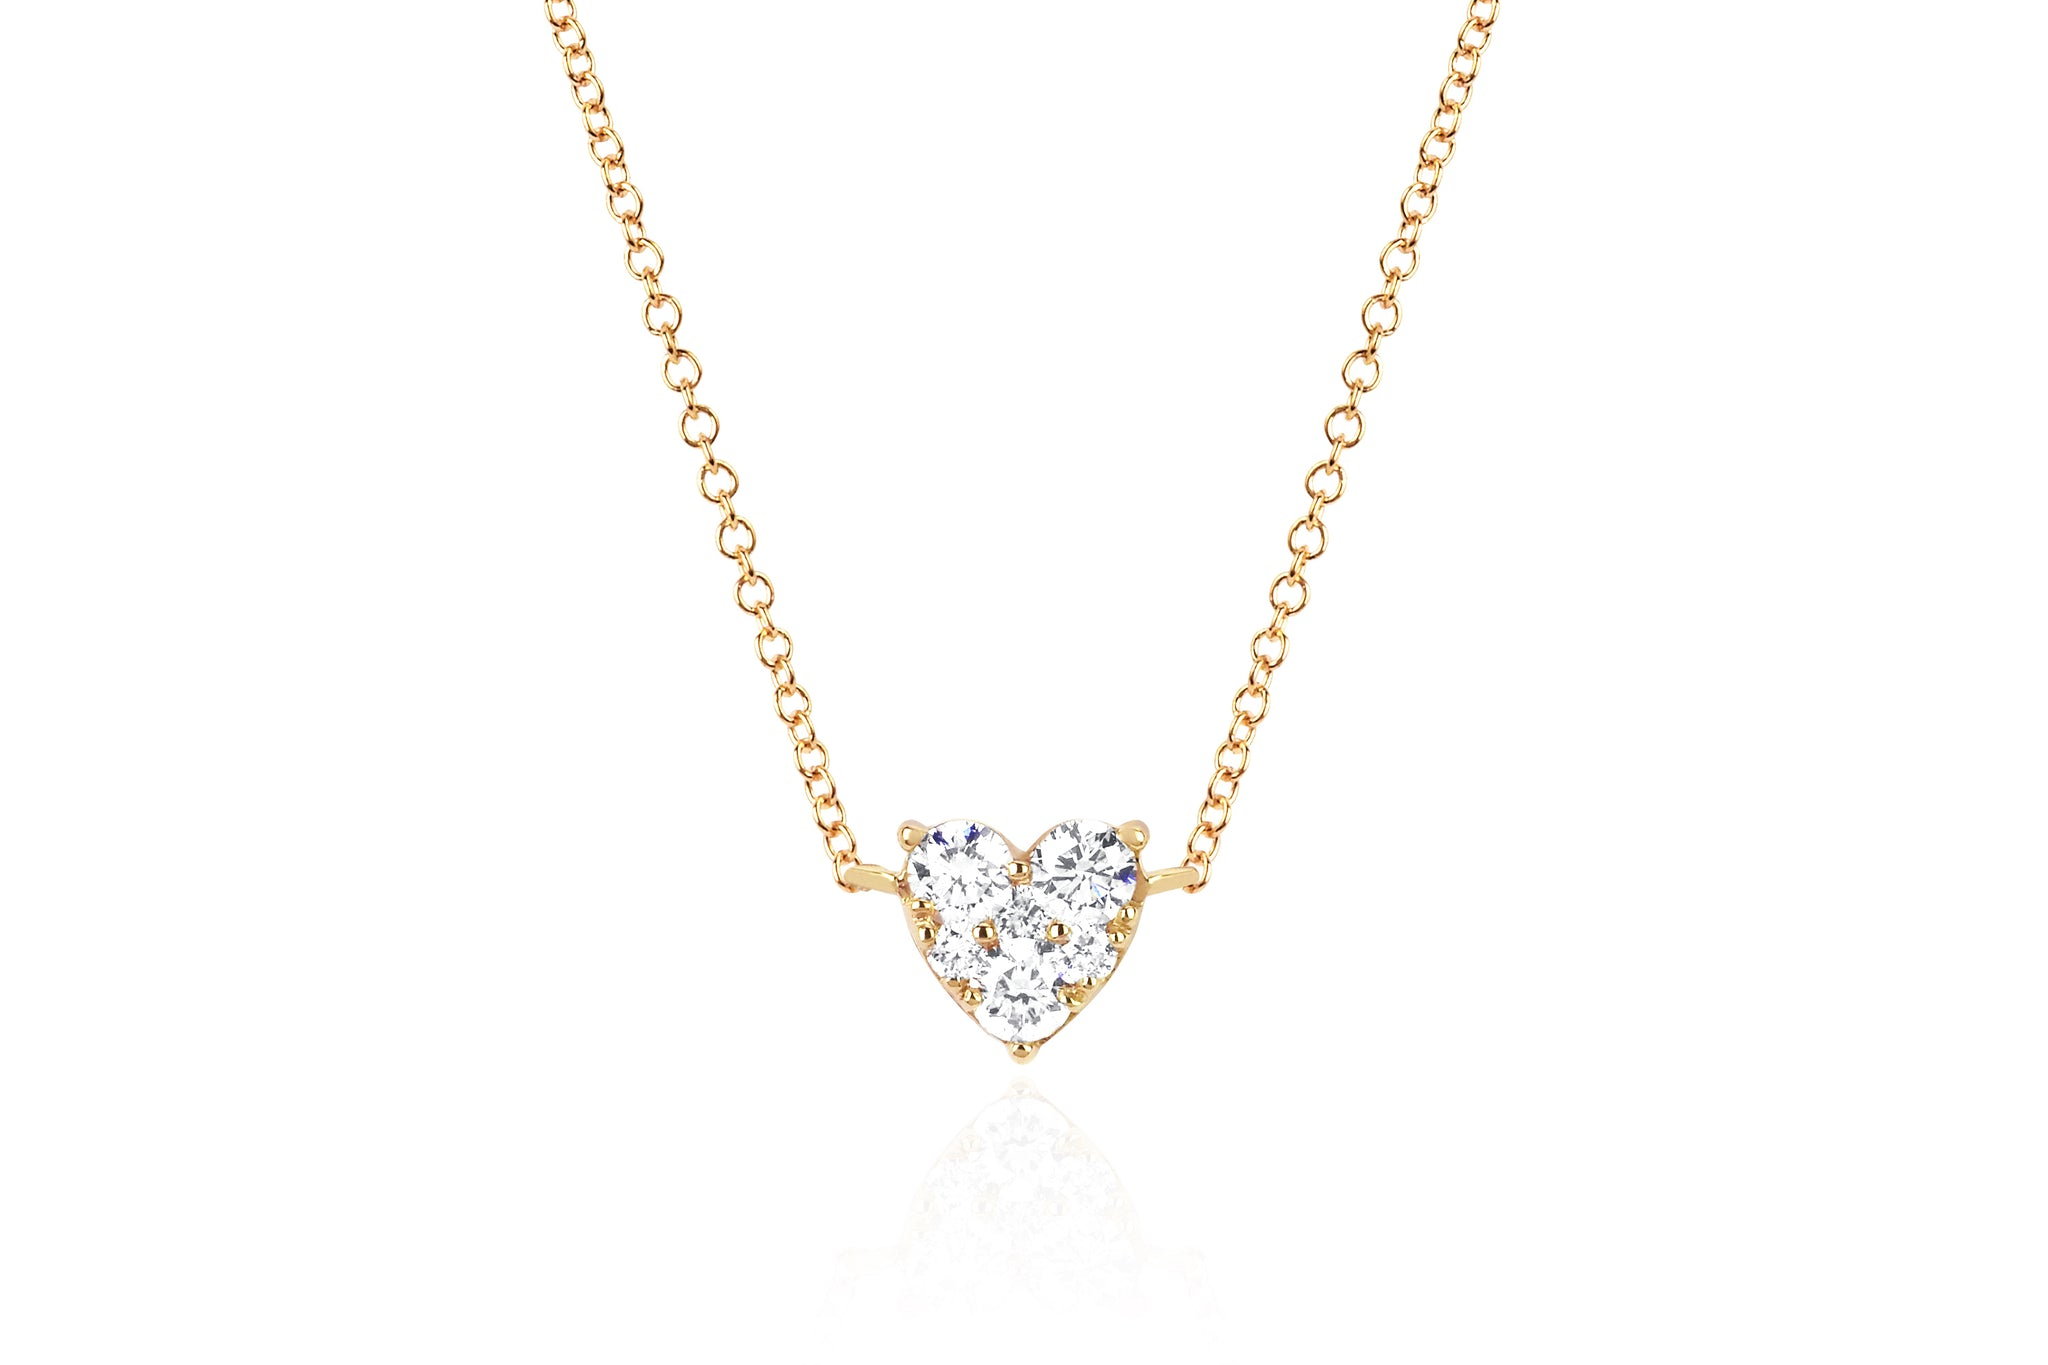 EF Collection 14K Full Cut Diamond Heart Necklace 2Betf9